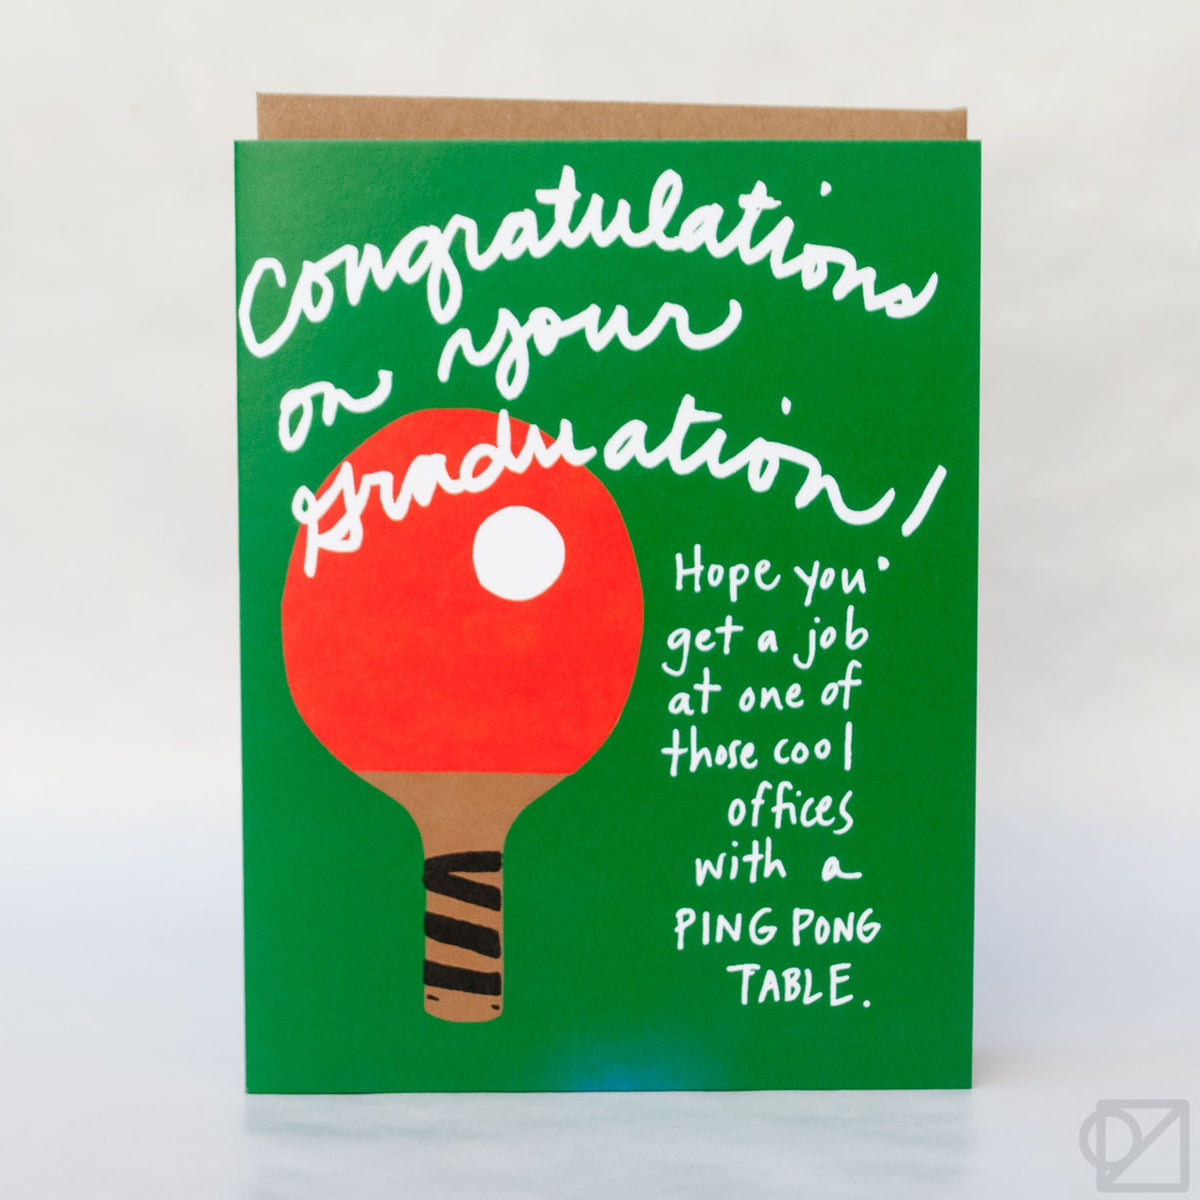 Ping Pong Graduation Day Greeting Card